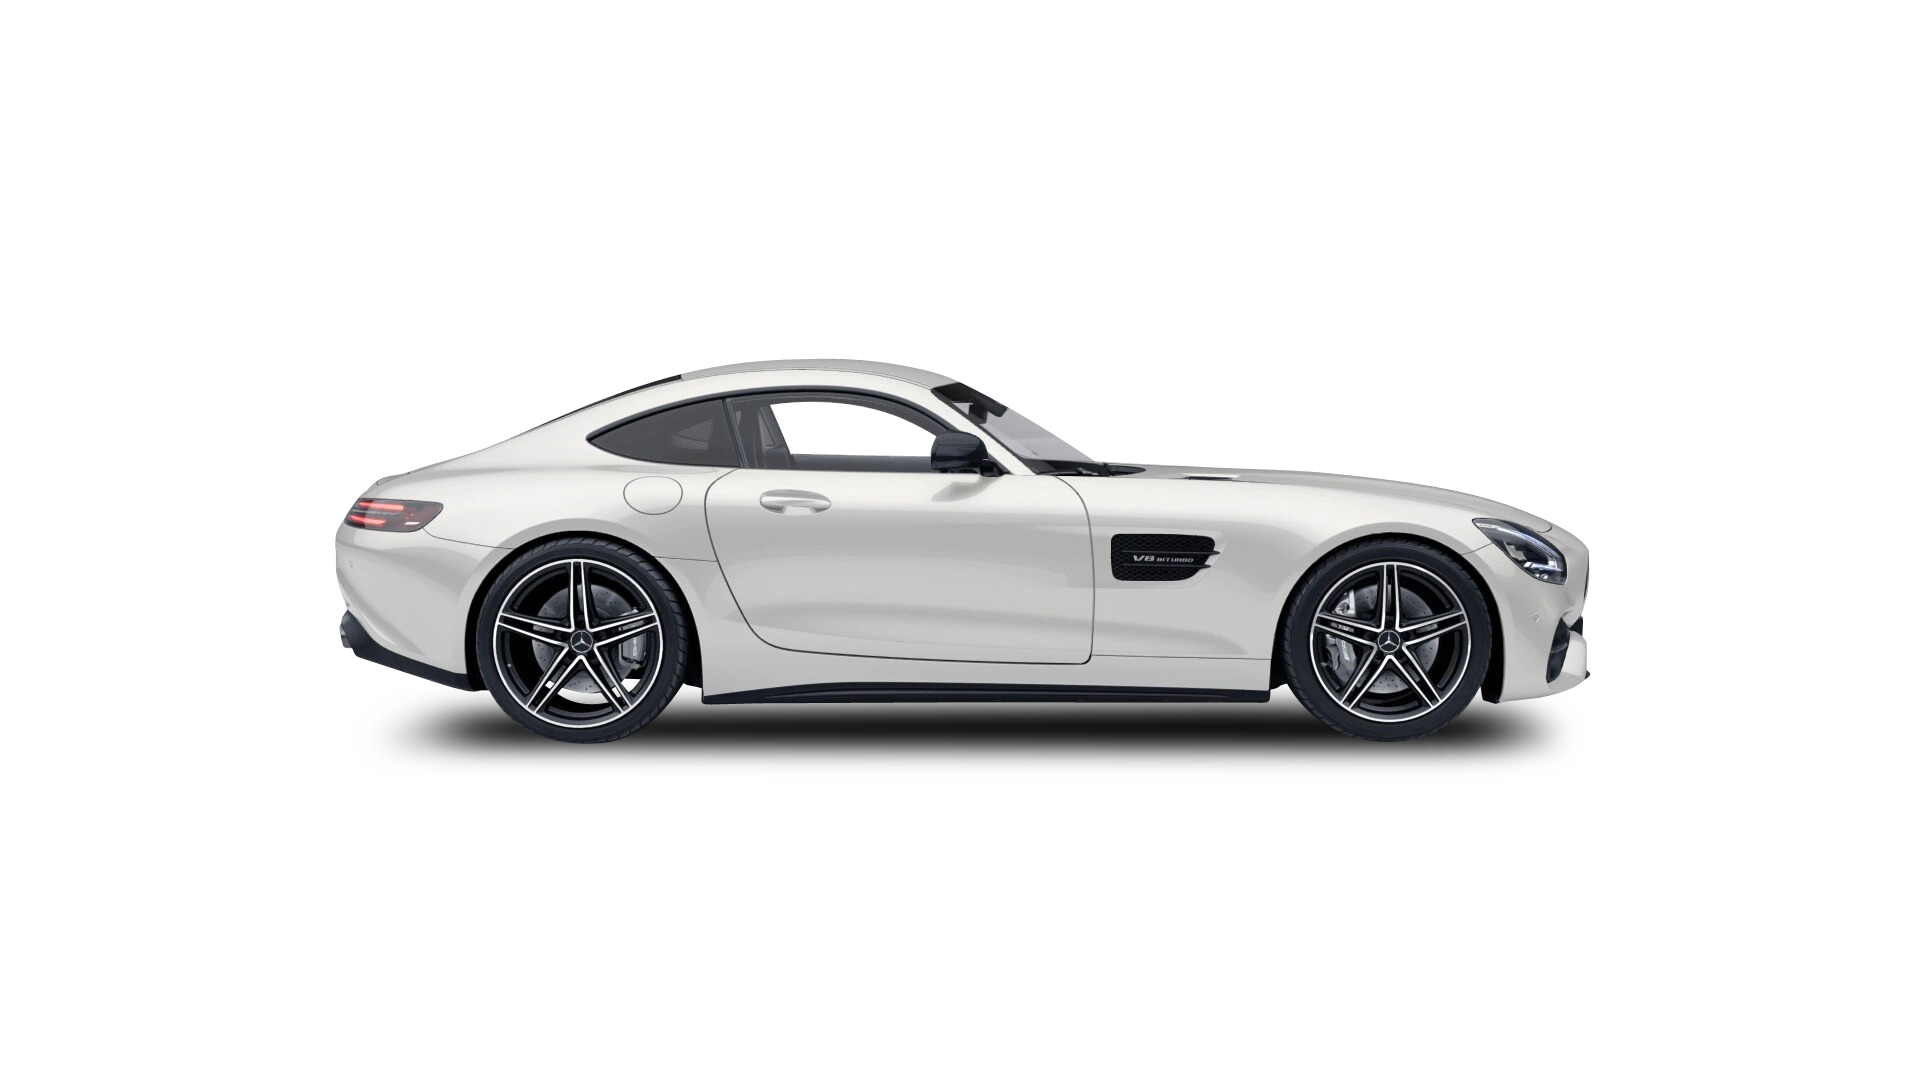 https://cogcms-images.azureedge.net/media/35412/mercedes-amg-gt-edition-476-coupe.png